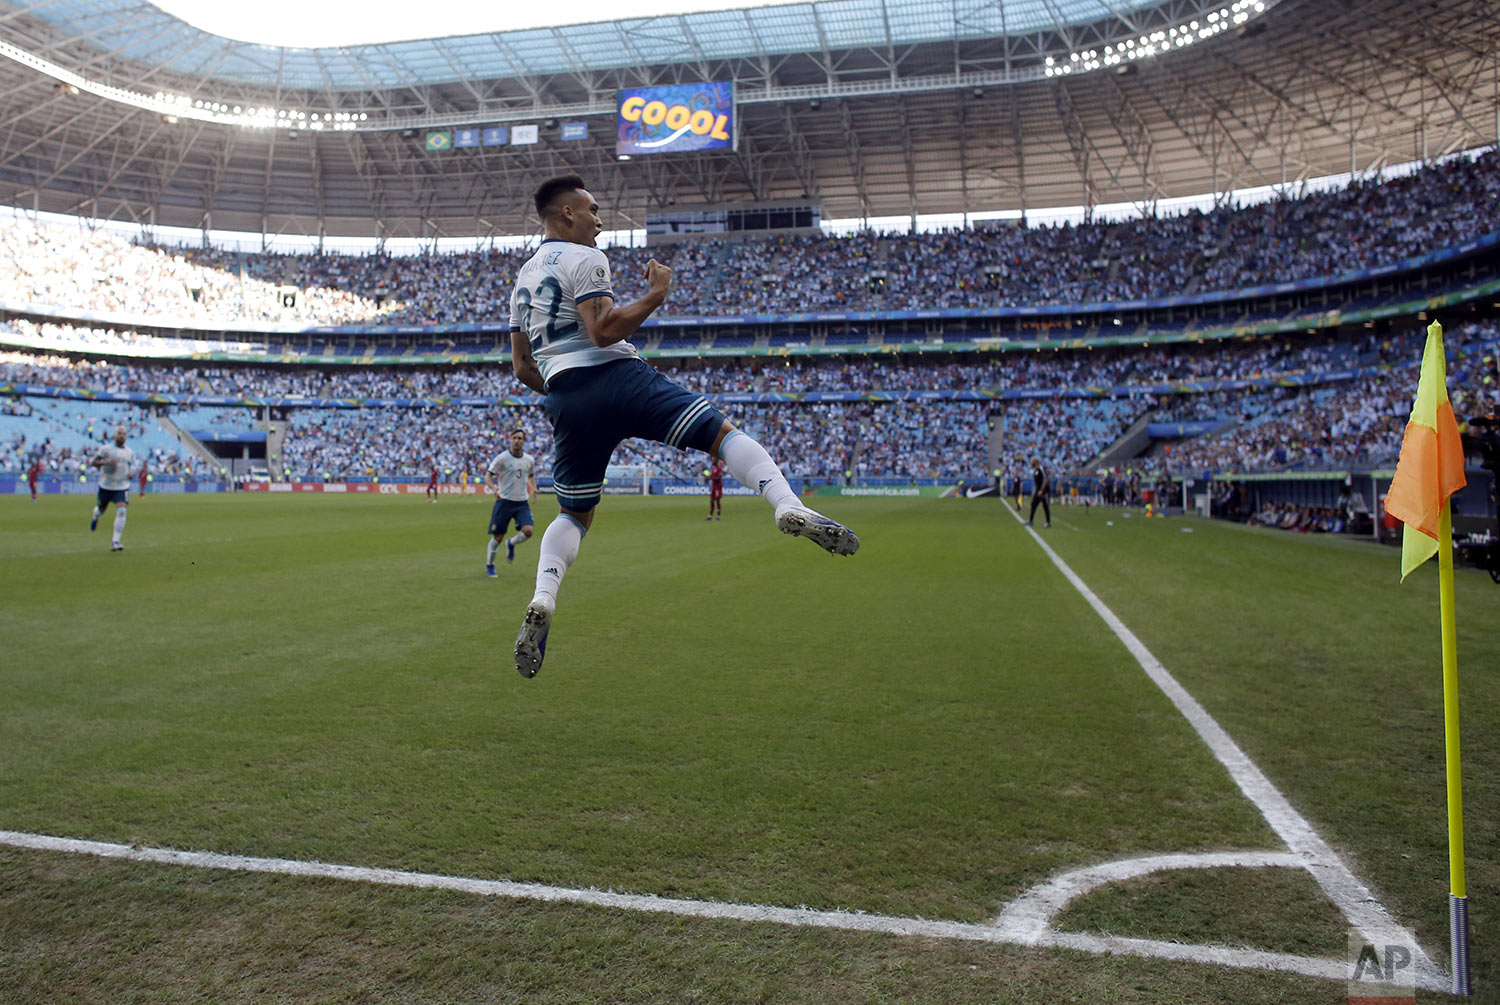 Argentina's Lautaro Martinez celebrates scoring against Qatar during a Copa America Group B soccer match at Arena do Gremio in Porto Alegre, Brazil, Sunday, June 23, 2019. (AP Photo/Victor Caivano)